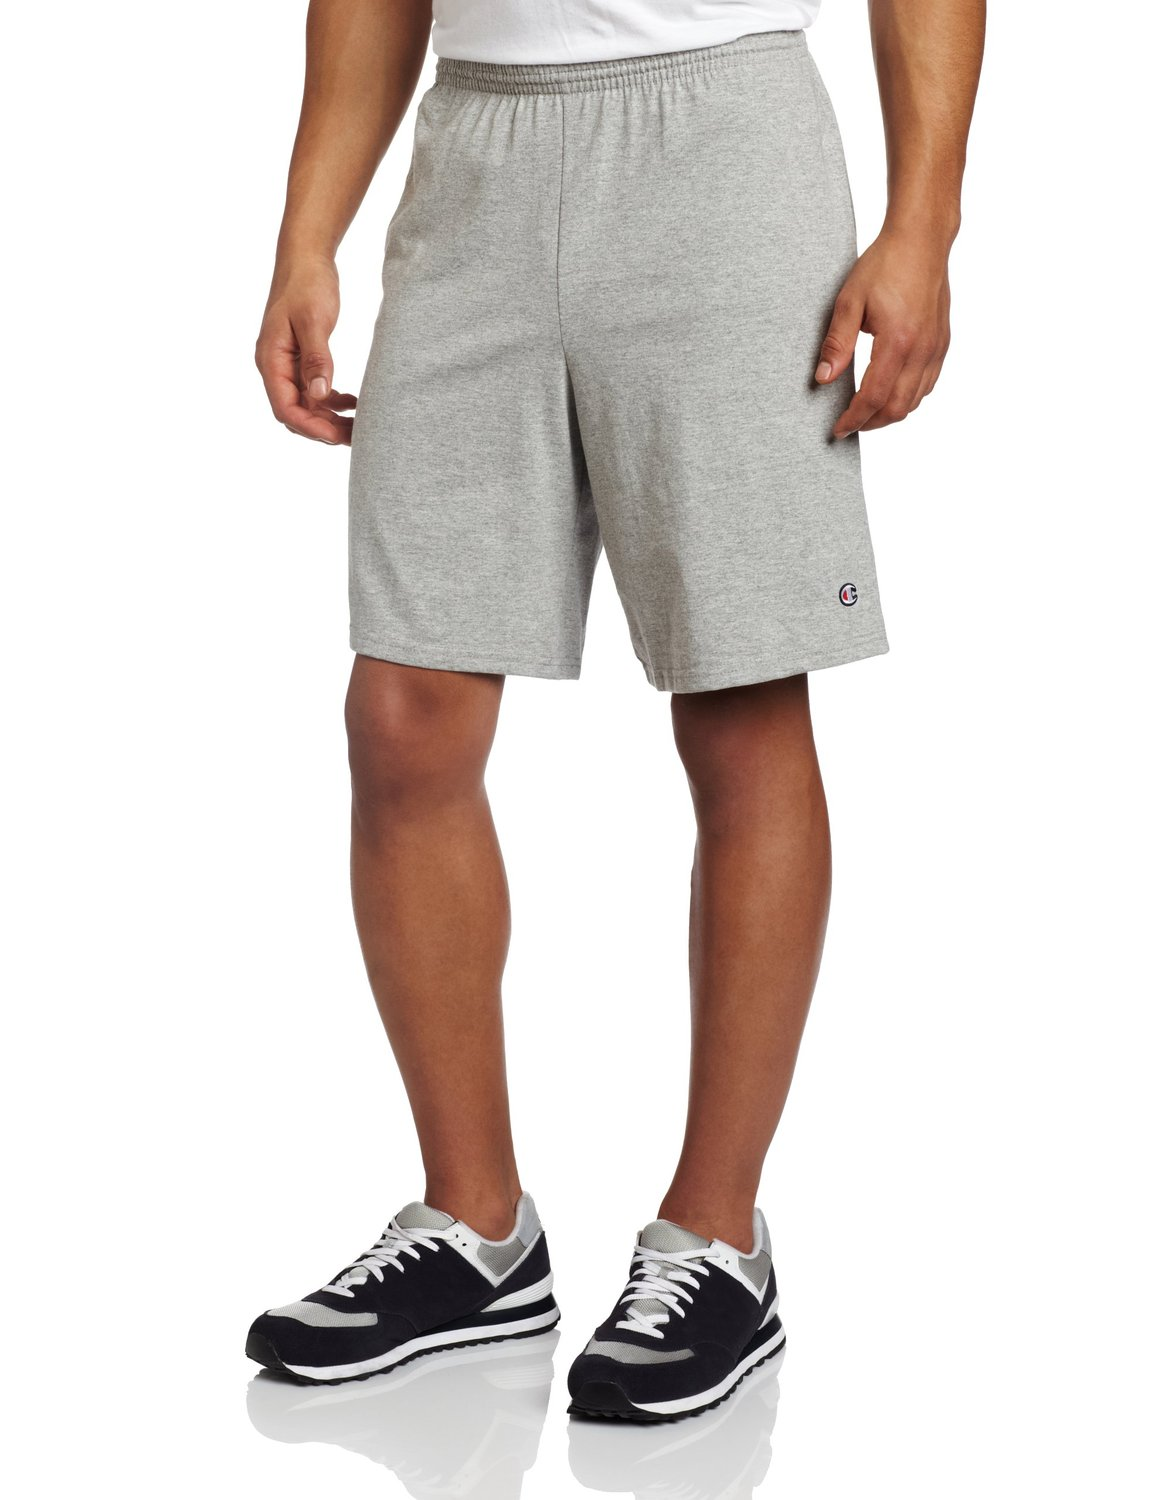 Champion Authentic Cotton Jersey 9-Inch Men's Shorts with Pockets